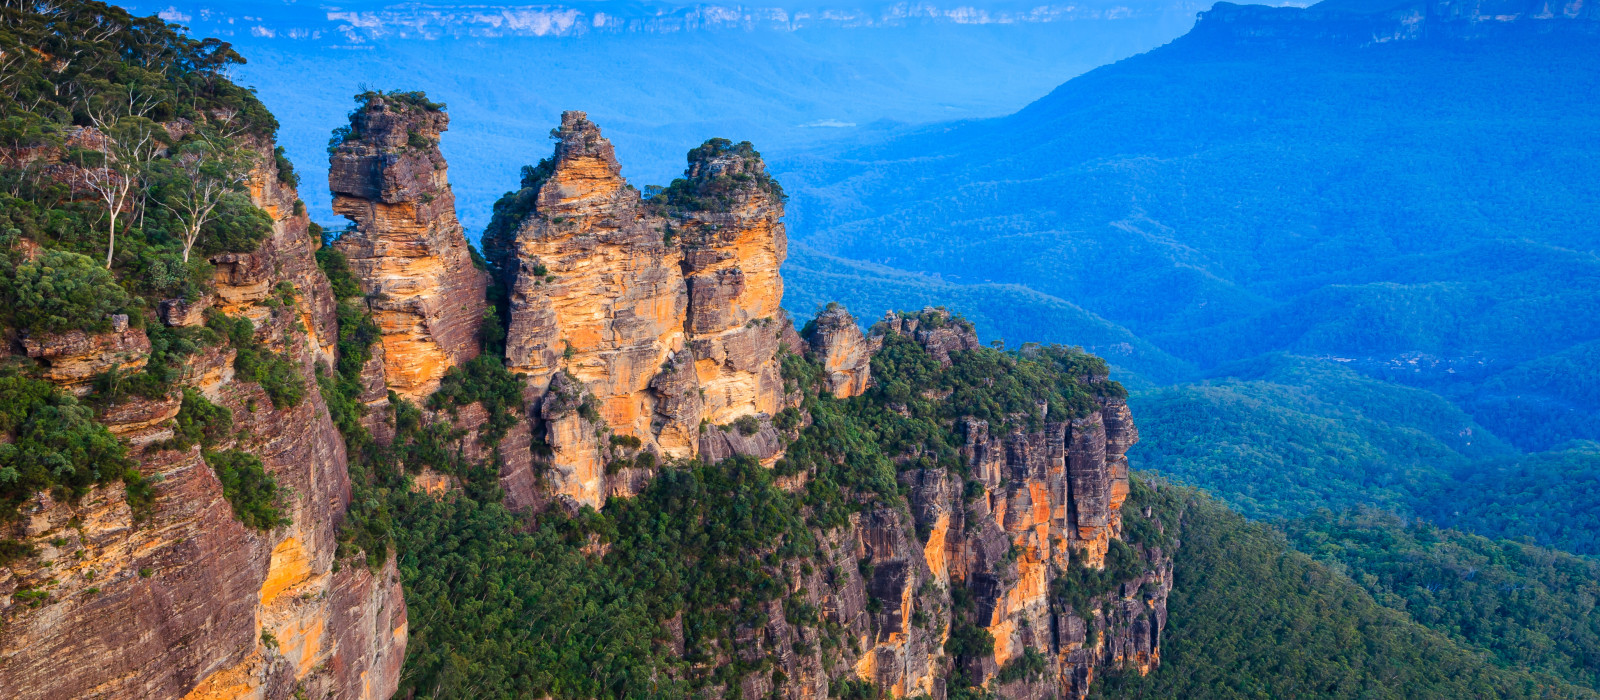 Reiseziel Blue Mountains Australien